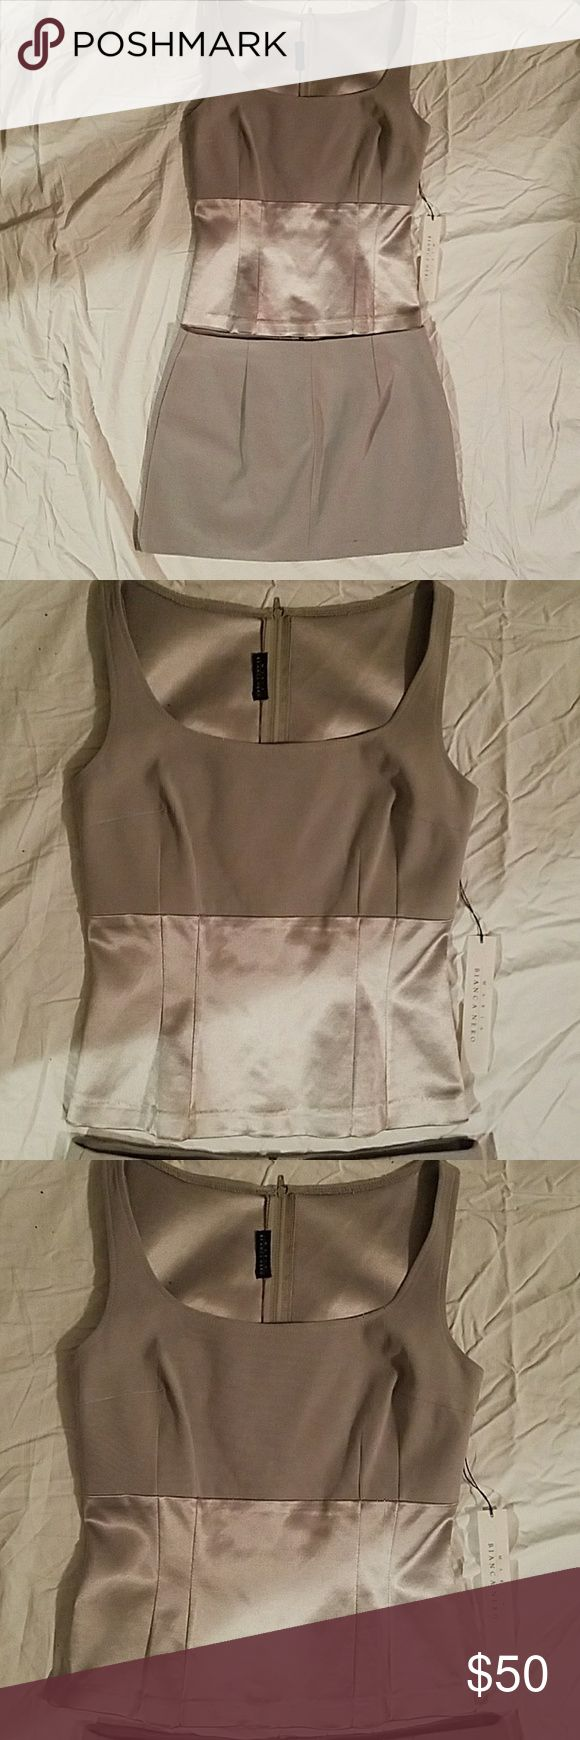 NWT 2 piece silver/grey Maria Bianca Nero NWT, sz small top  sleeveless fitted top and mini skirt sixe medium. Both zip in the back. Skirt is 13 inches long & 18 inches wide. Designer Maria Bianca Nero maria Bianca Nero  Other